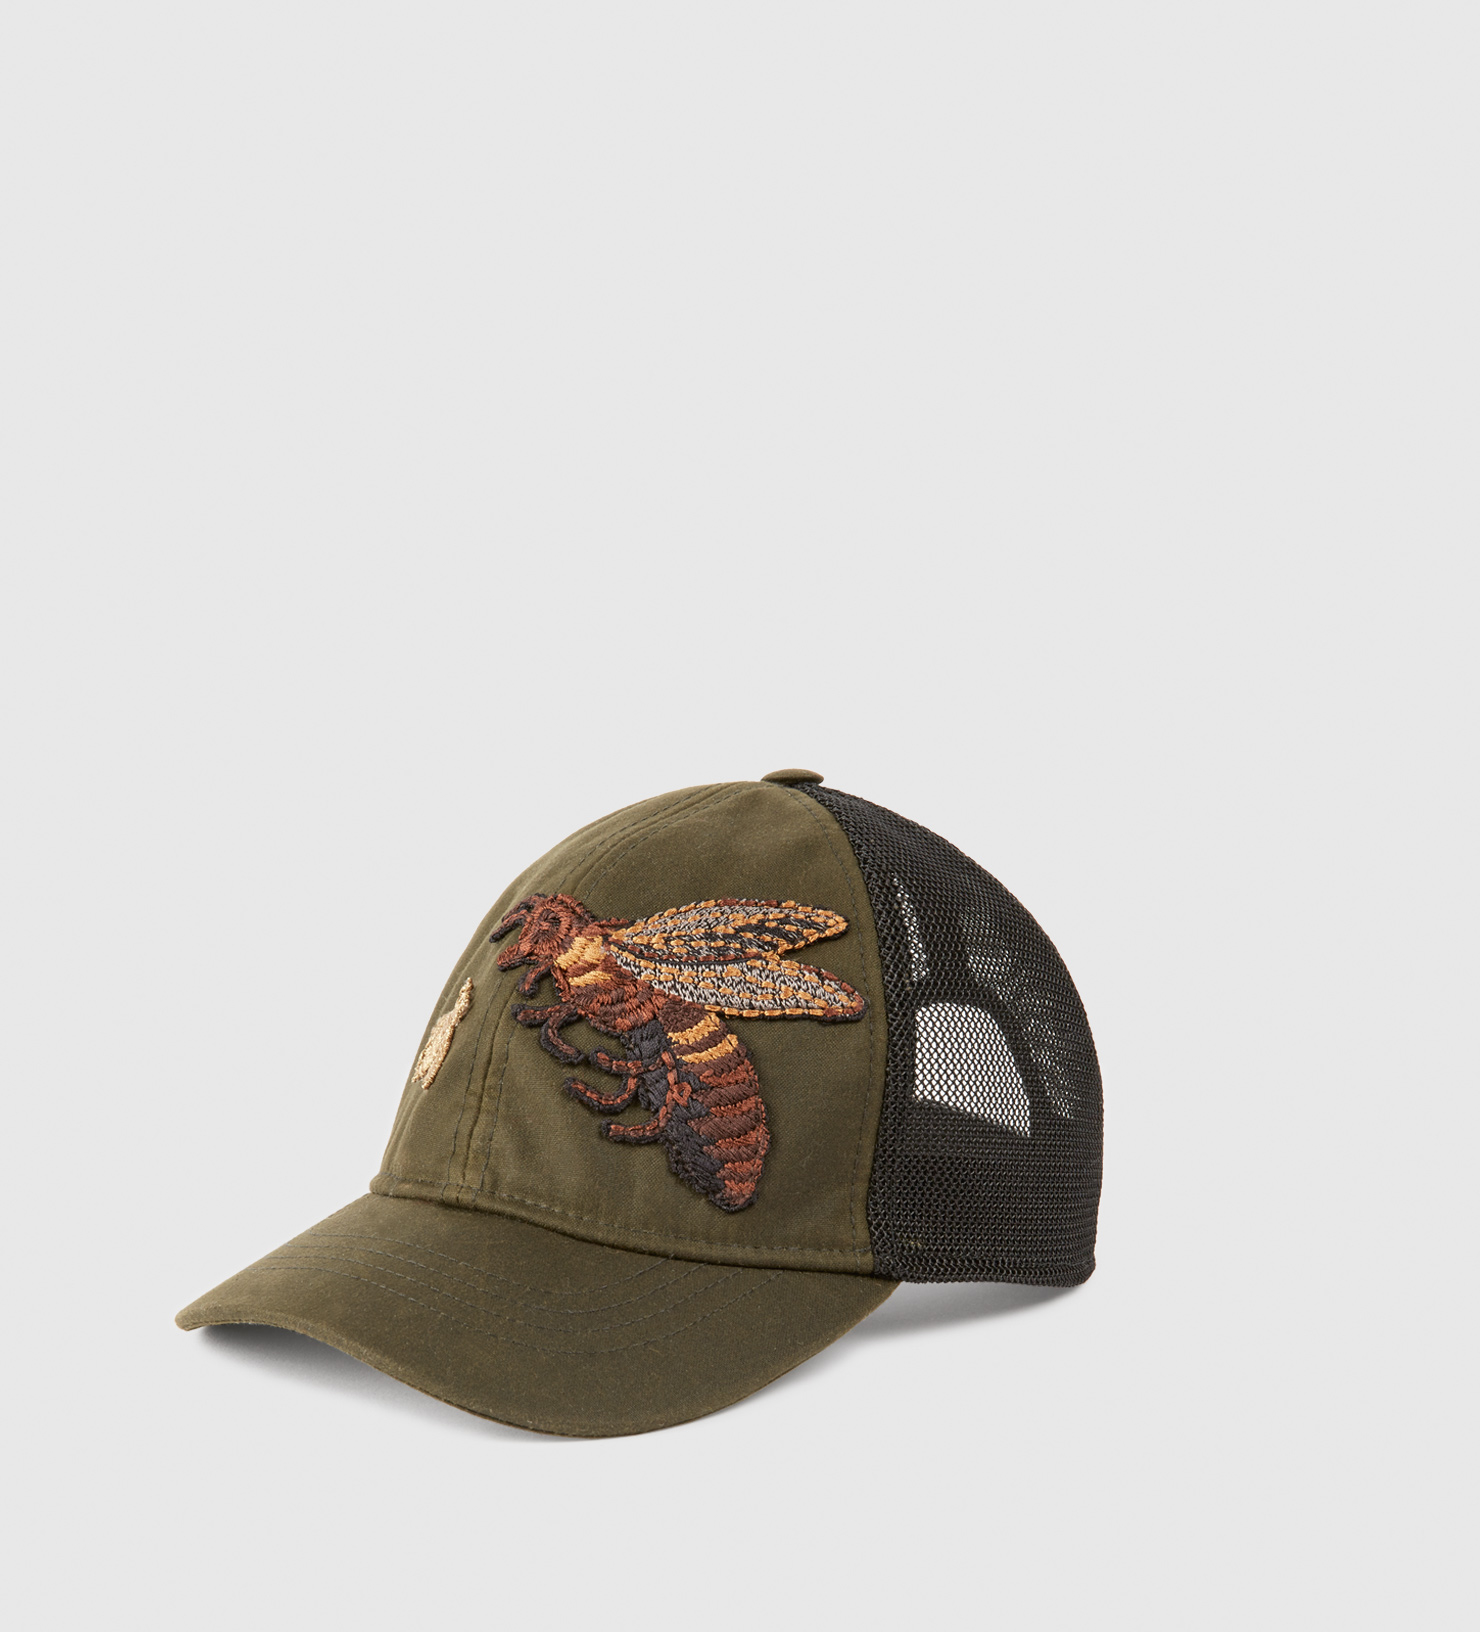 Gucci Canvas Hat With Bee Embroidery for Men - Lyst 8b6e93293da